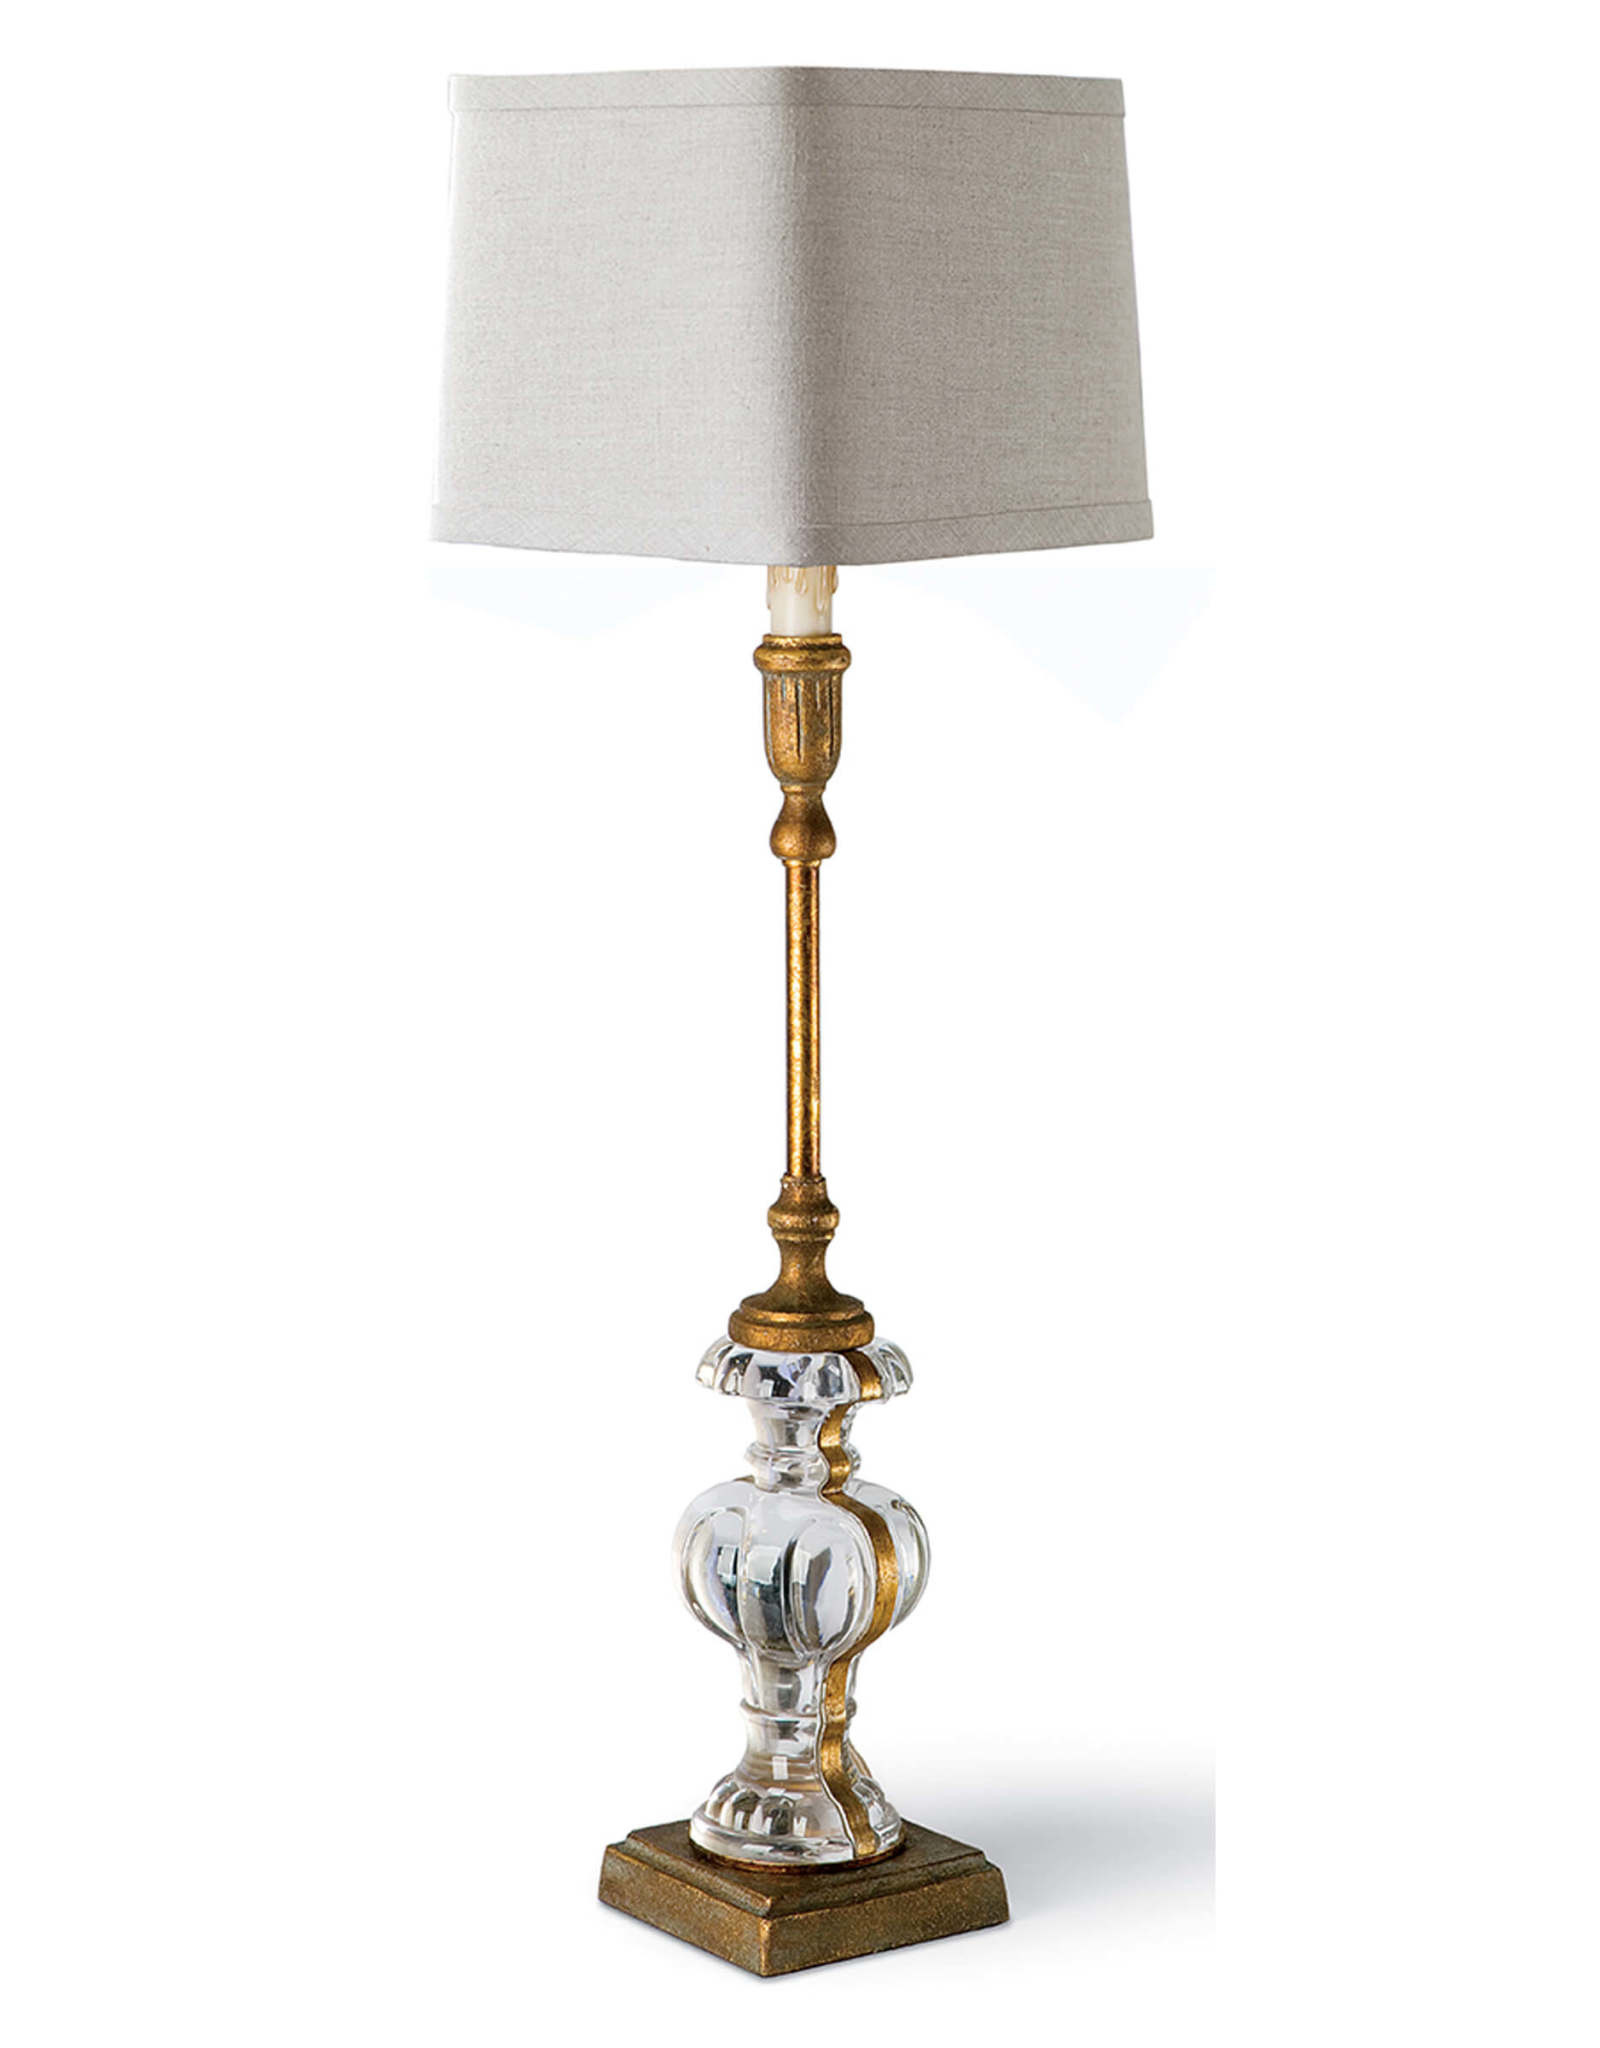 Regina Andrew Design Parisian Glass Buffet Table Lamp (Antique Gold Leaf)